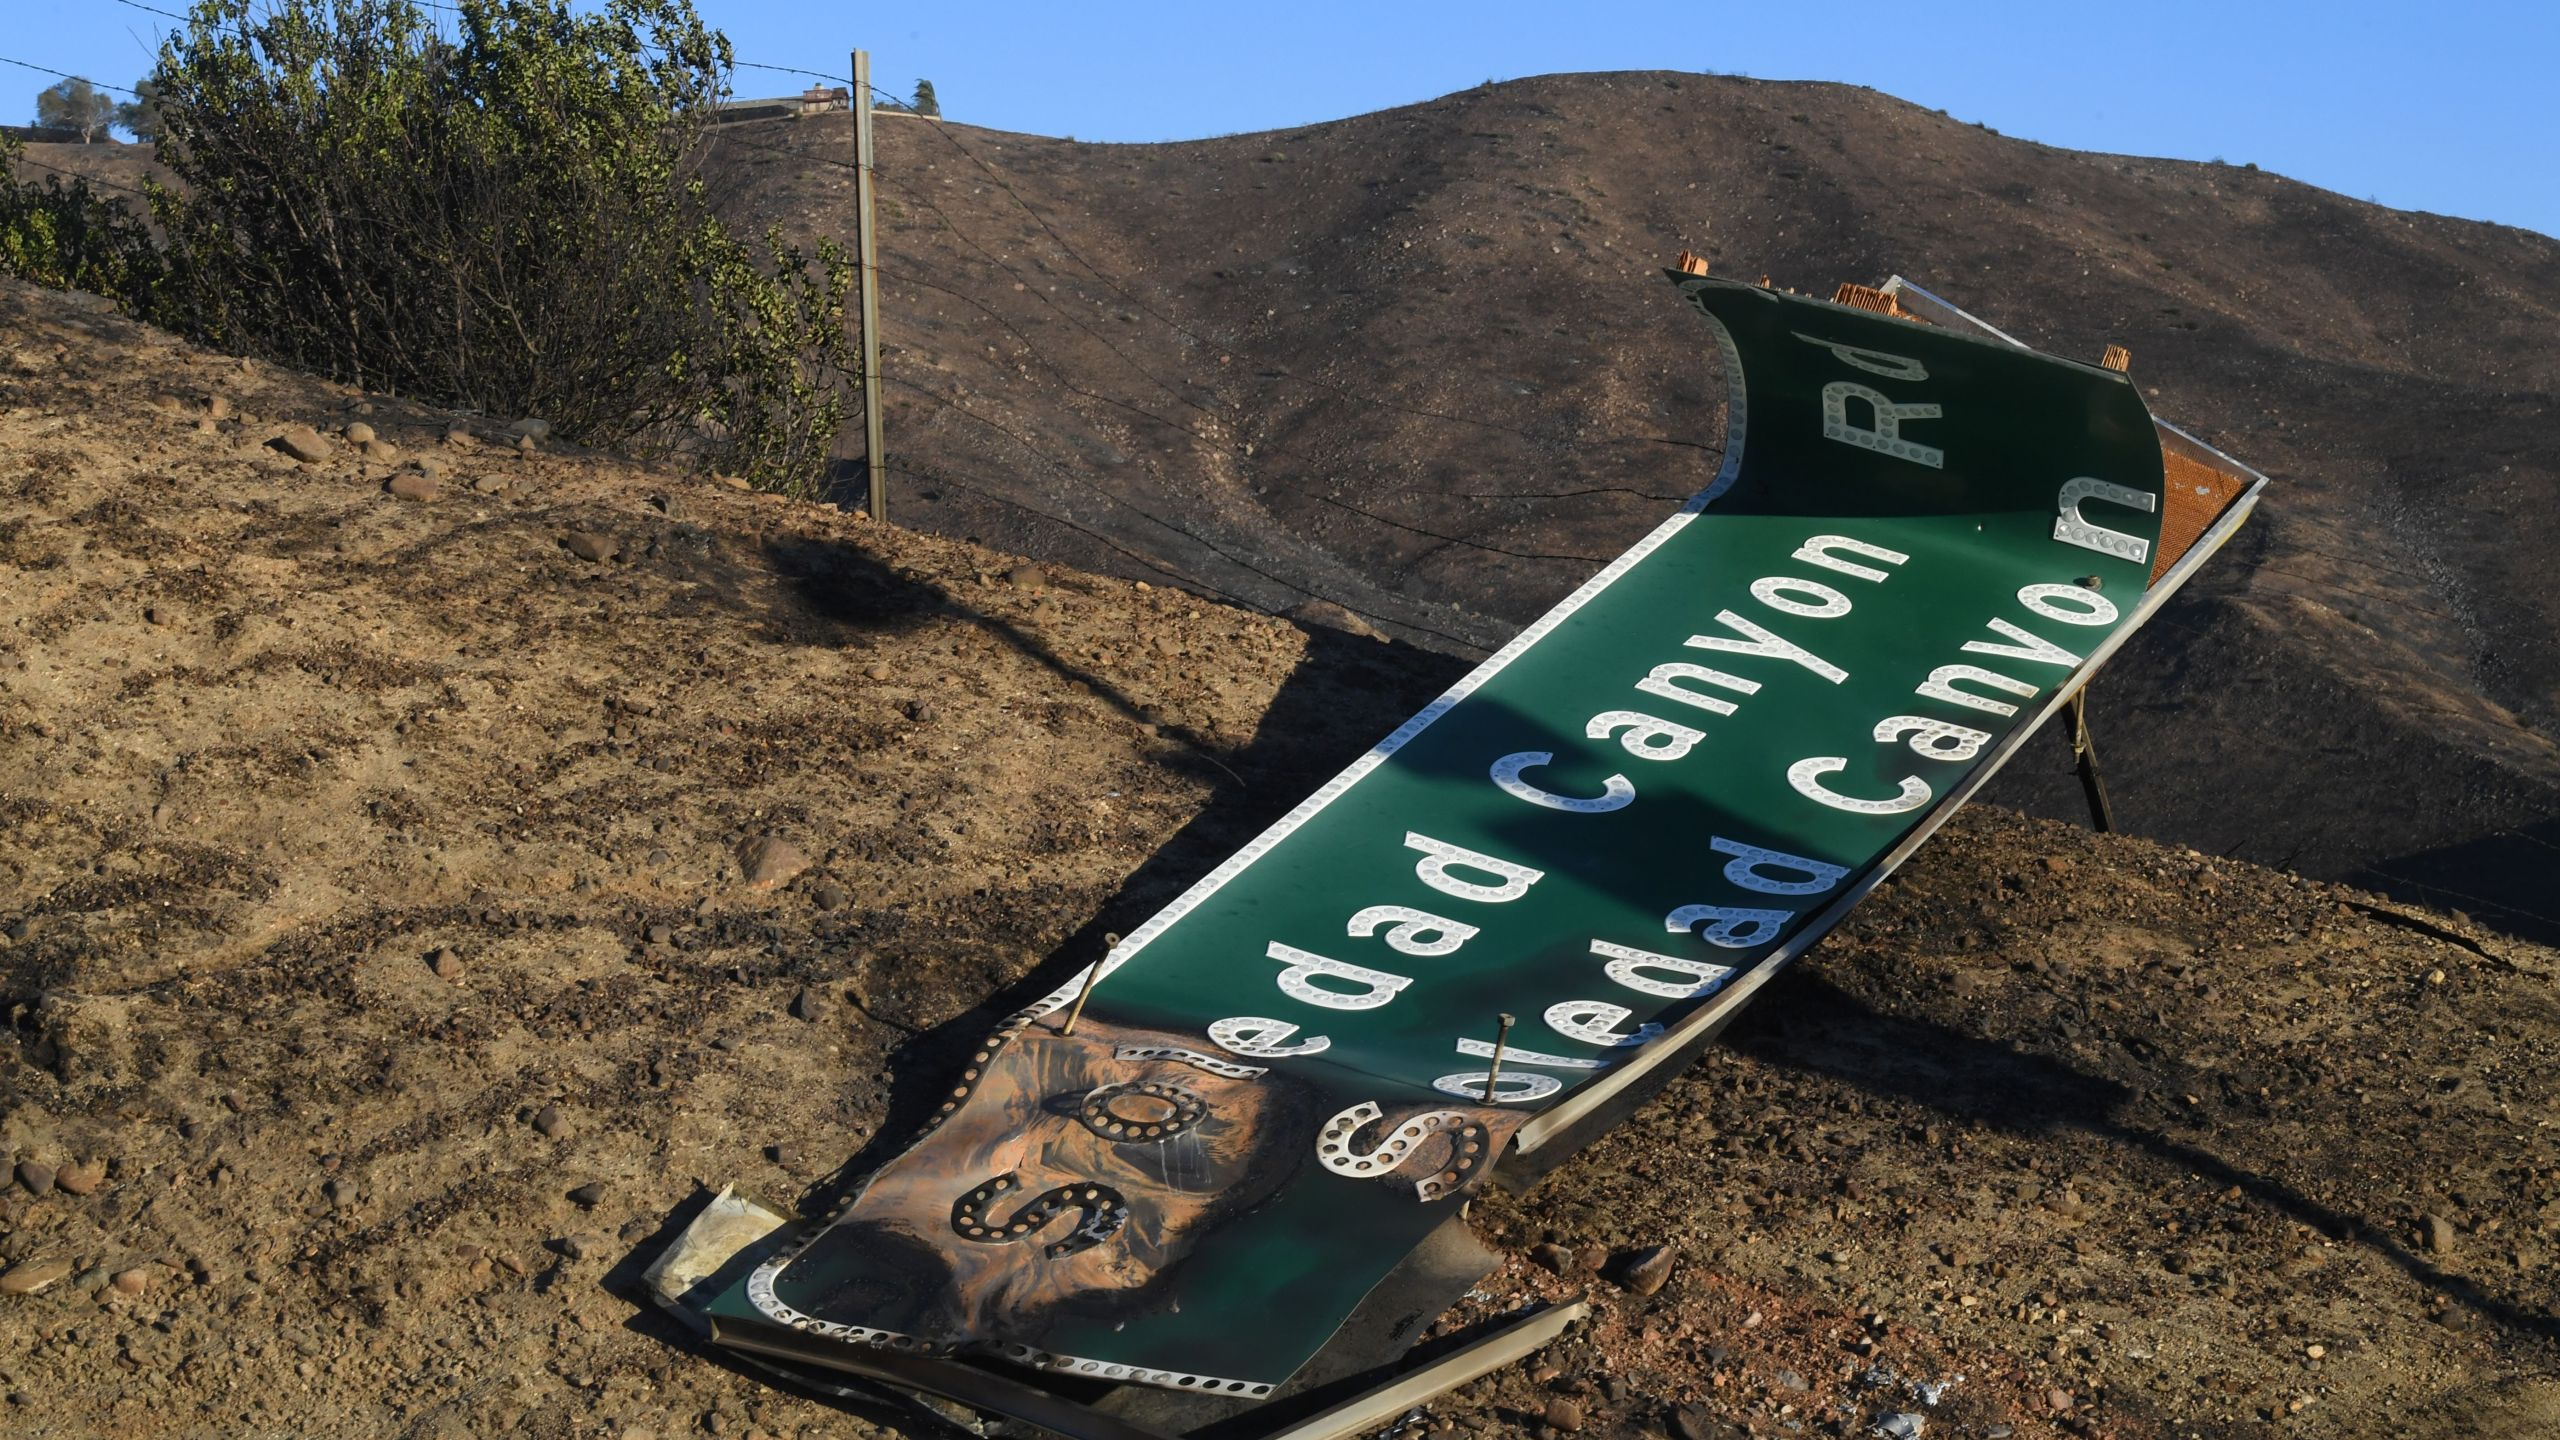 Fire damage to the 14 Freeway in Agua Dulce is seen during the Tick Fire on Oct. 25, 2019. (Credit: Mark Ralston / AFP / Getty Images)